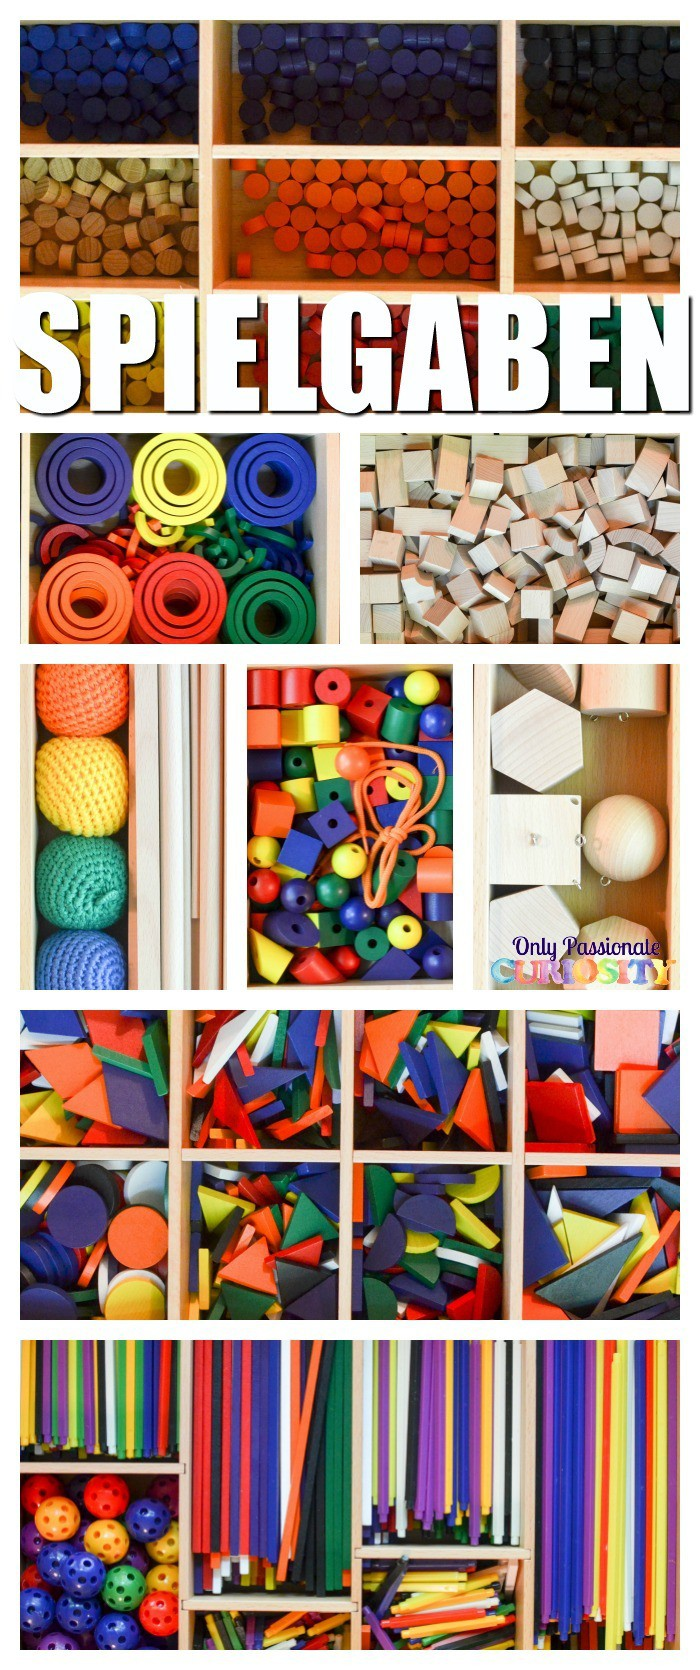 Using Manipulatives in your homeschool